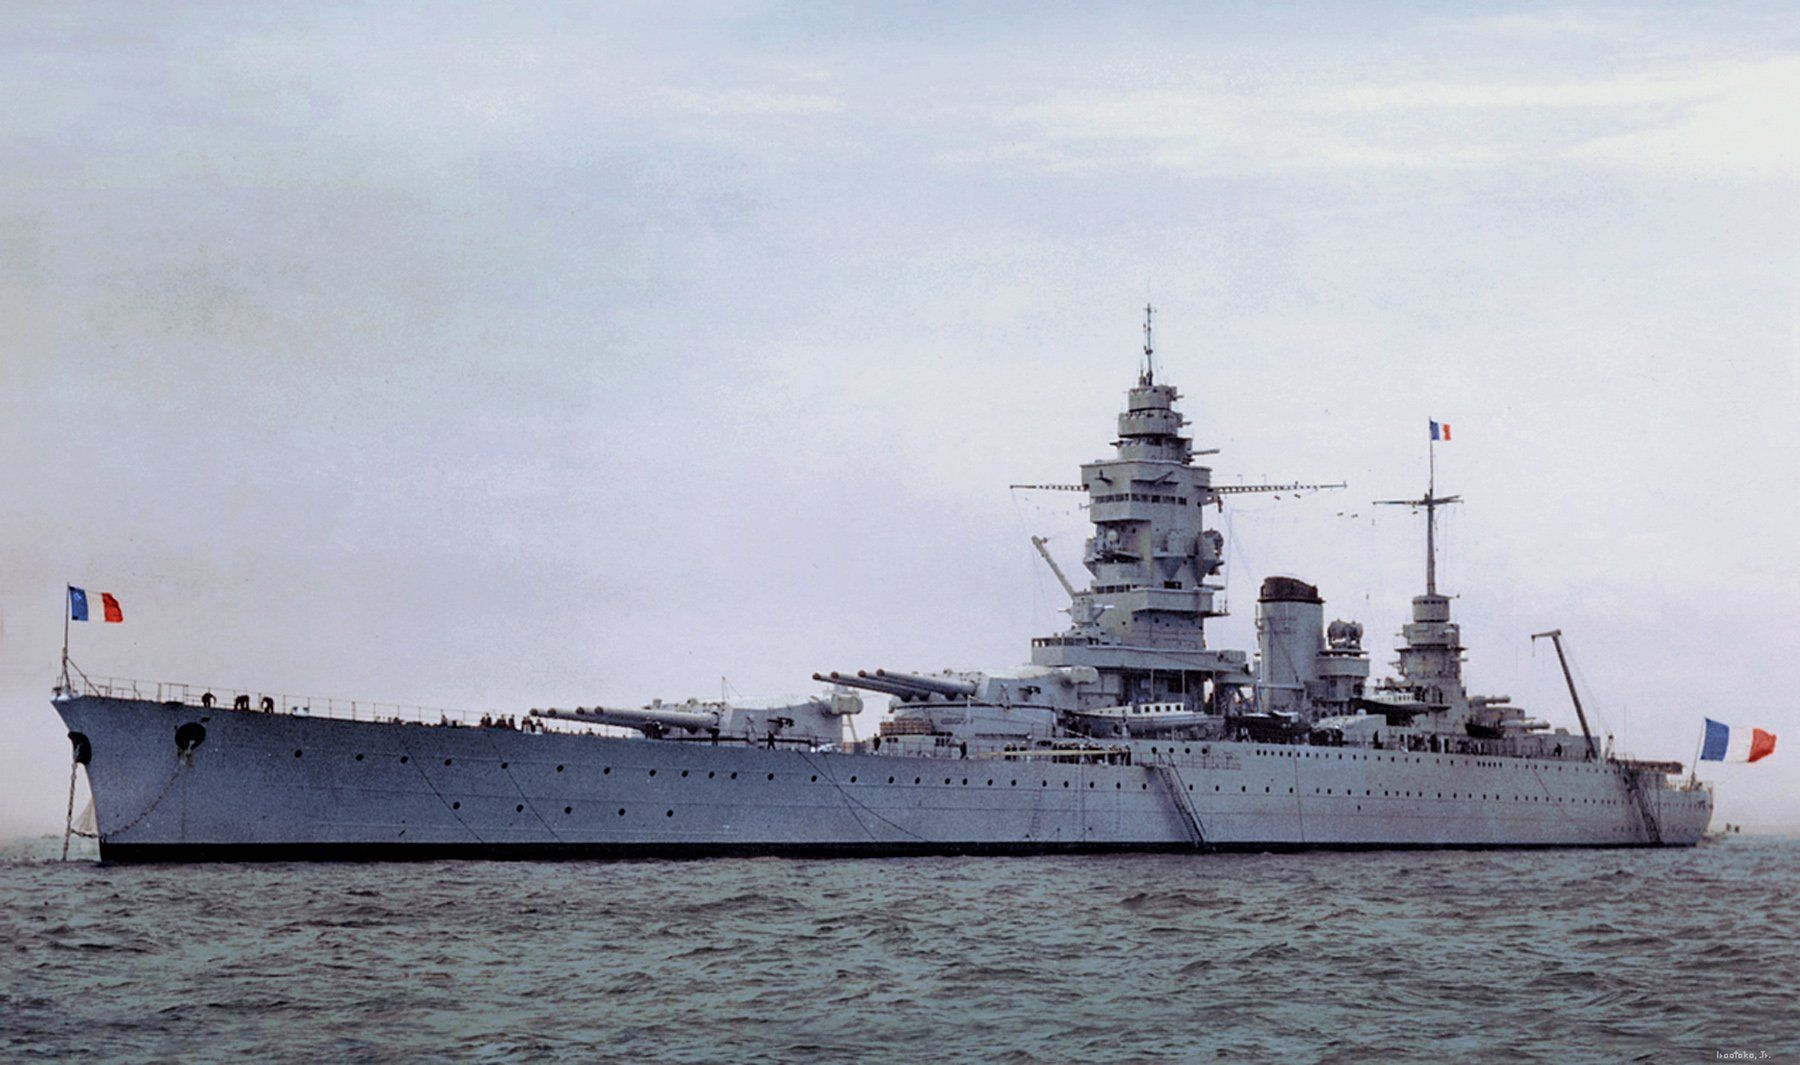 Dunkerque was the lead ship of the Dunkerque class of battleships built for the French Navy in the 1930's. The class also included Strasbourg. The two ships were the first capital ships to be built by the French Navy after World War I. (Rare color photo)